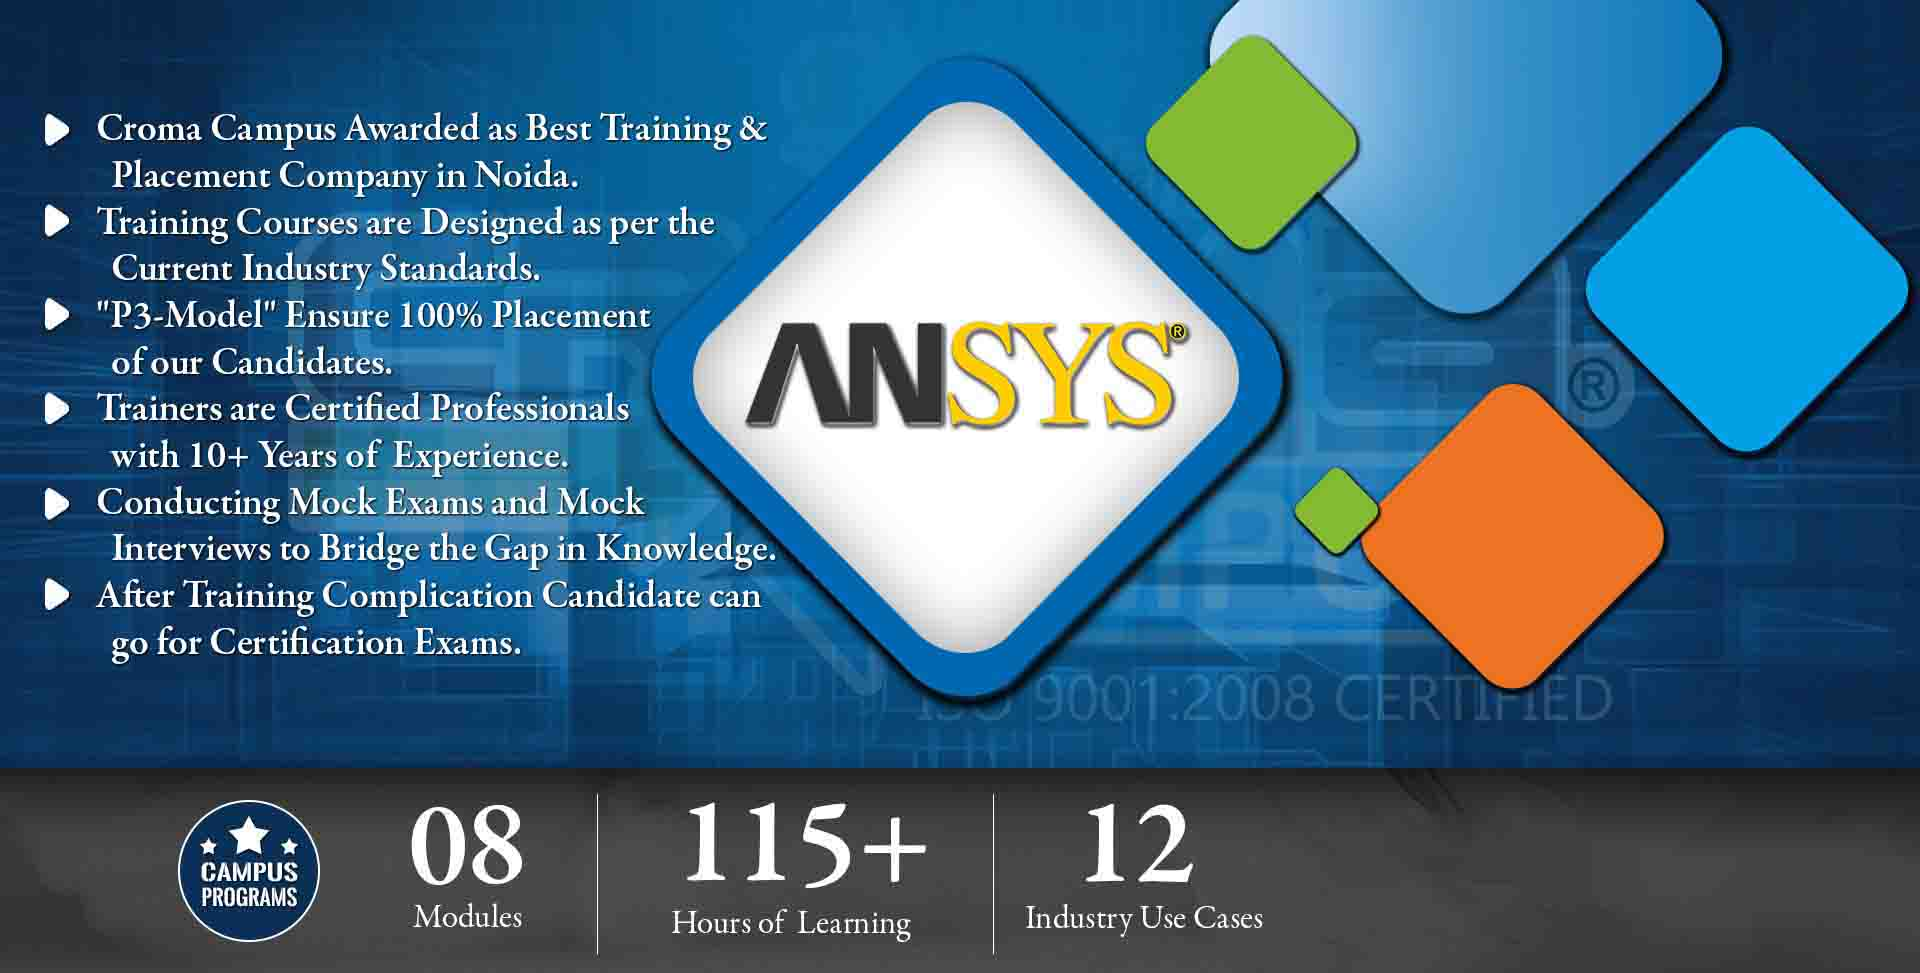 Ansys Training in Noida- Croma Campus